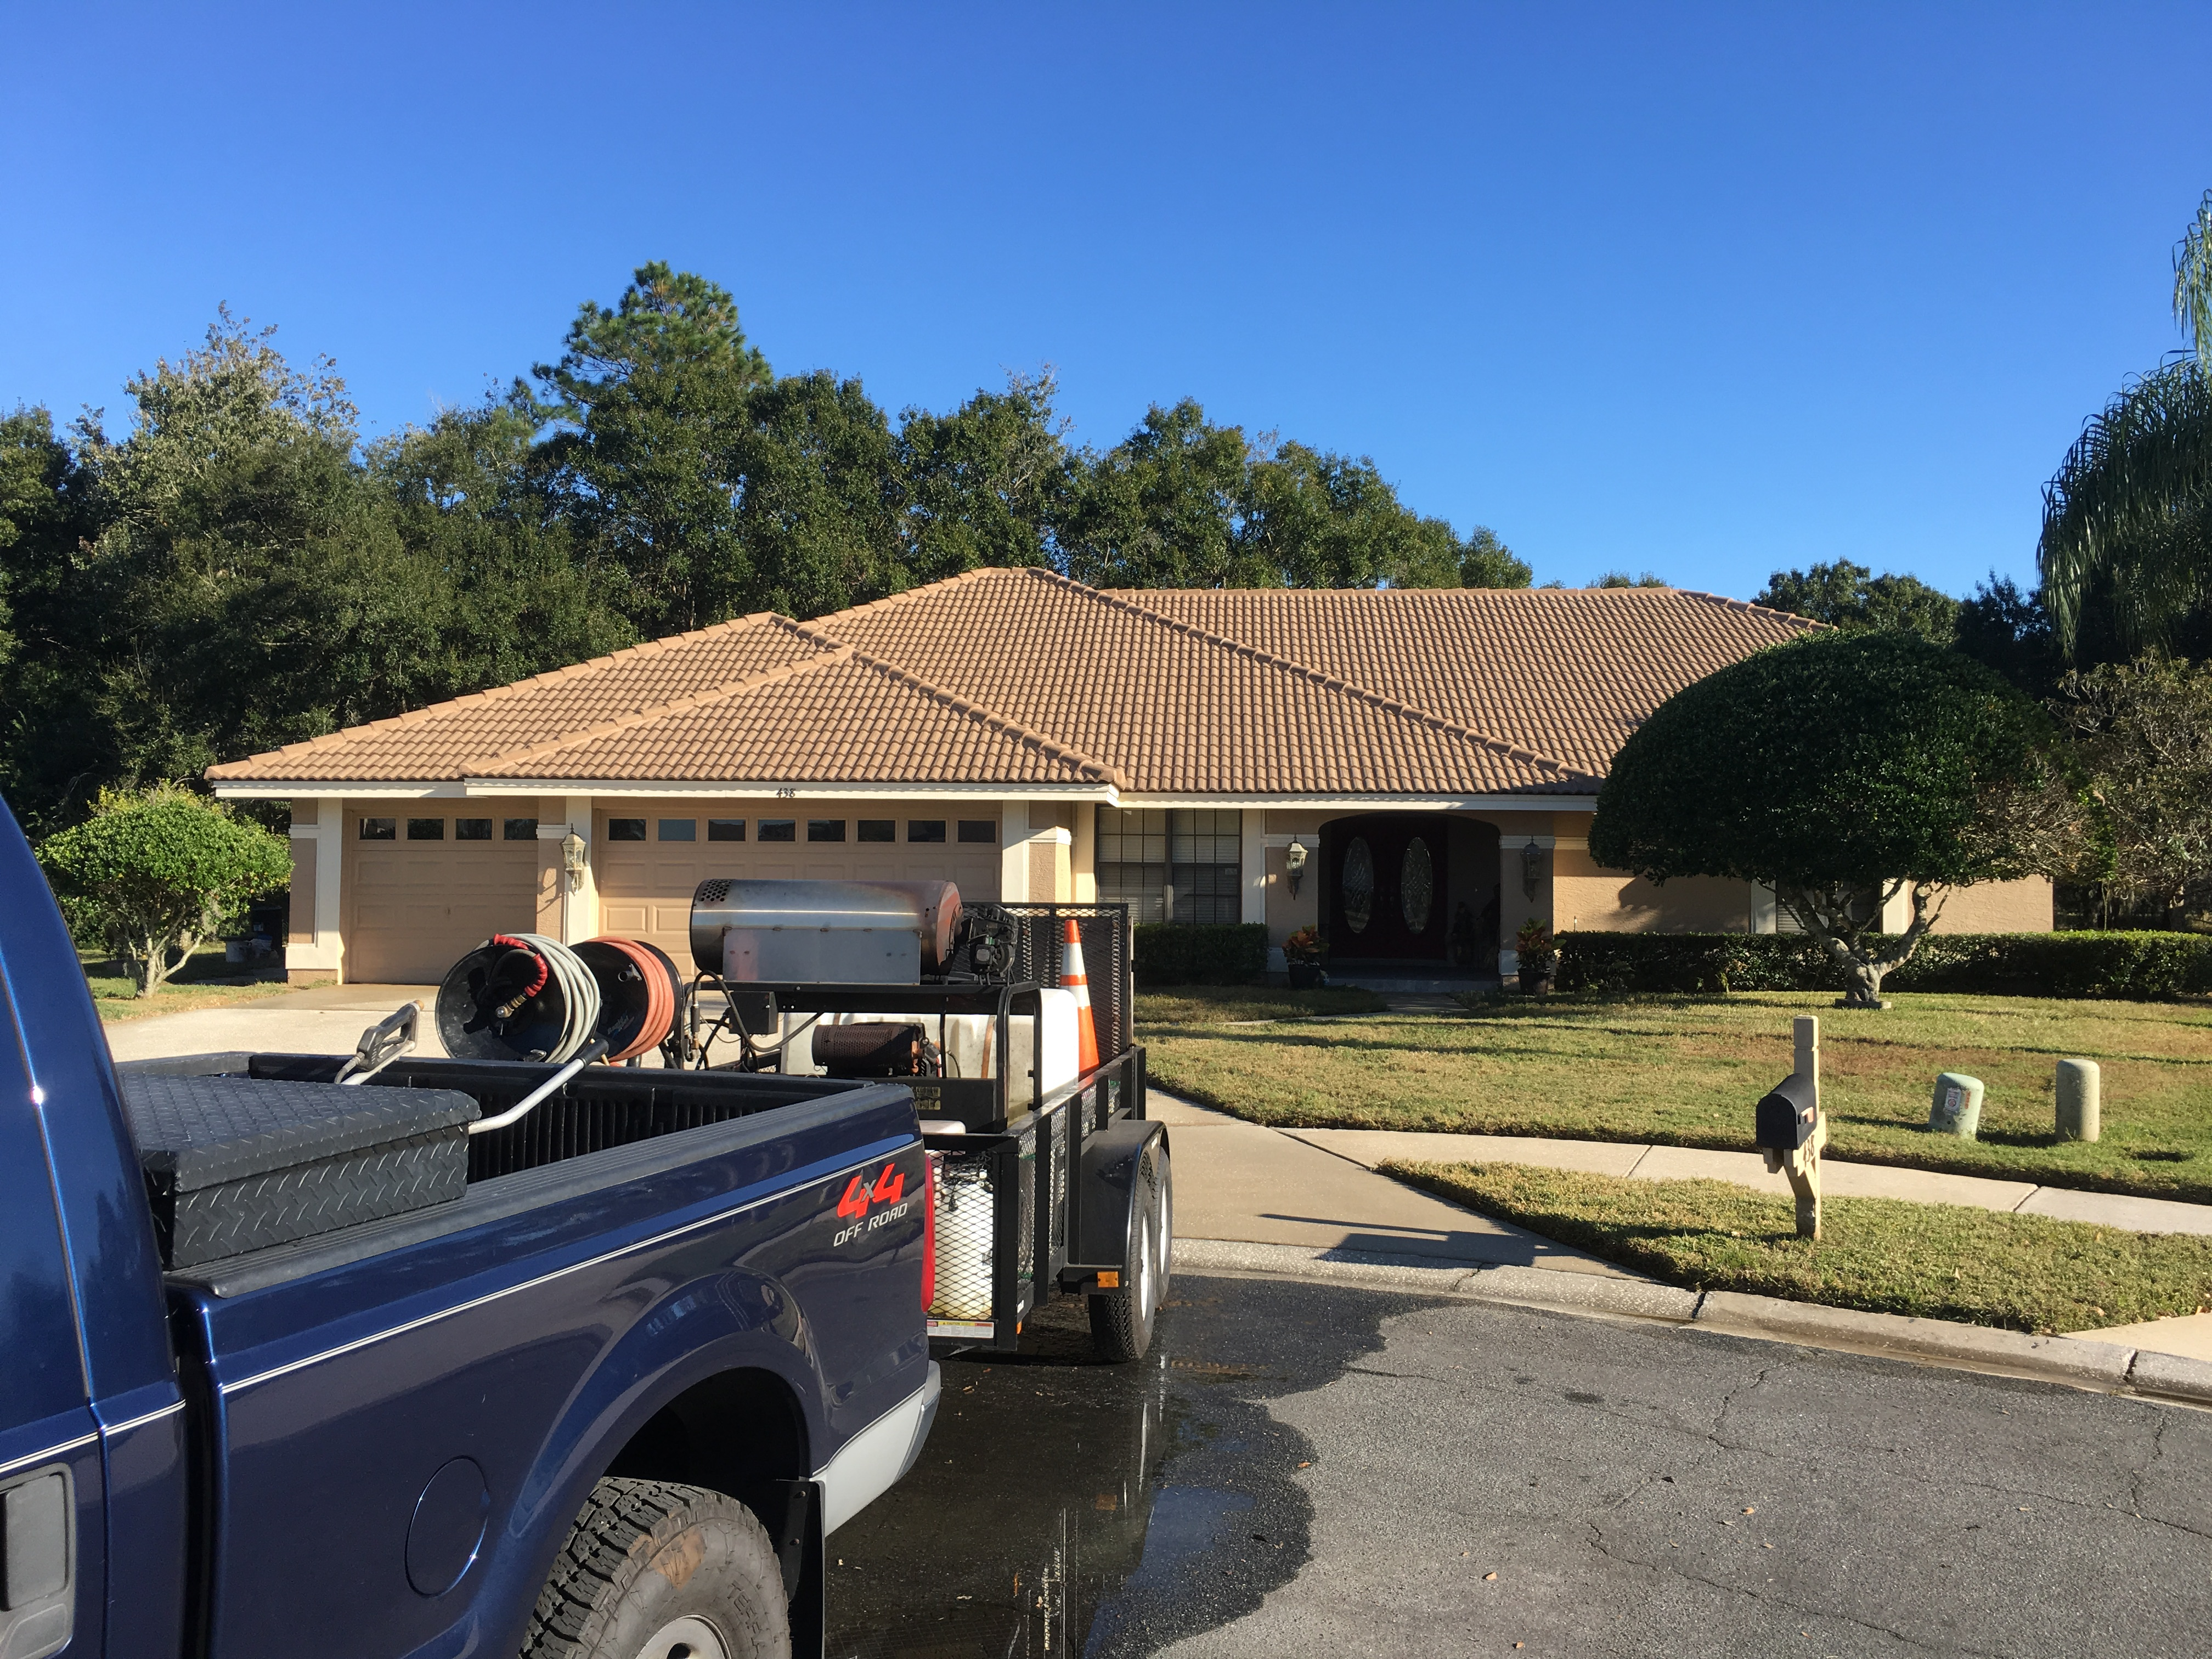 Pressure-Cleaning-Roof-Cleaning-Tarpon-Springs.jpg